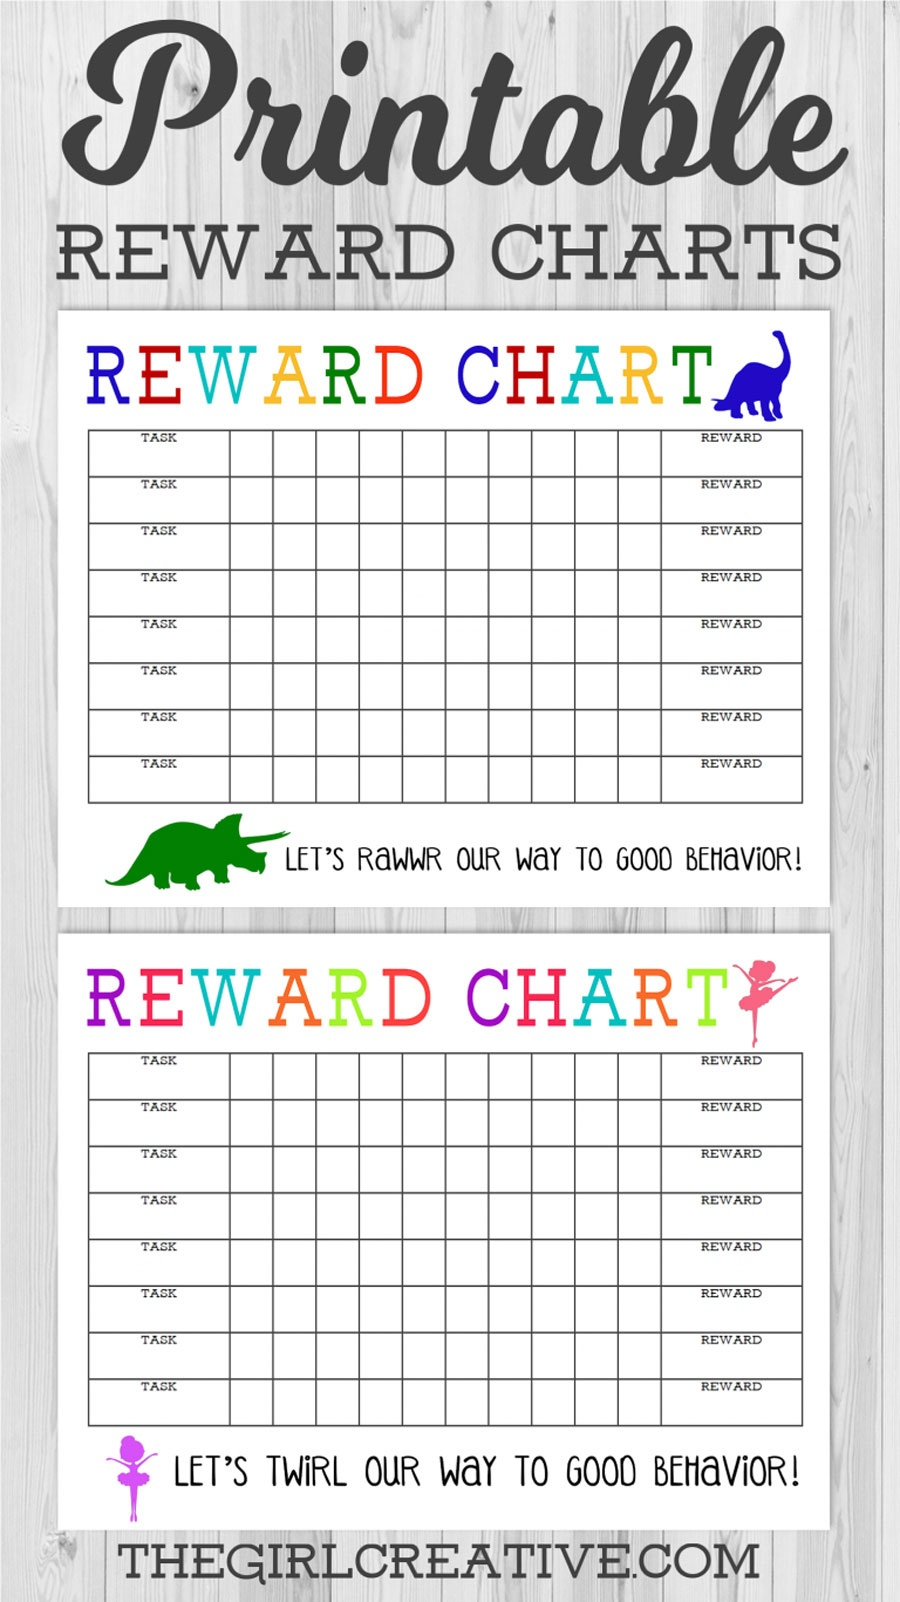 40 Printable Reward Charts For Kids (Pdf, Excel & Word) - Free Printable Incentive Charts For Teachers